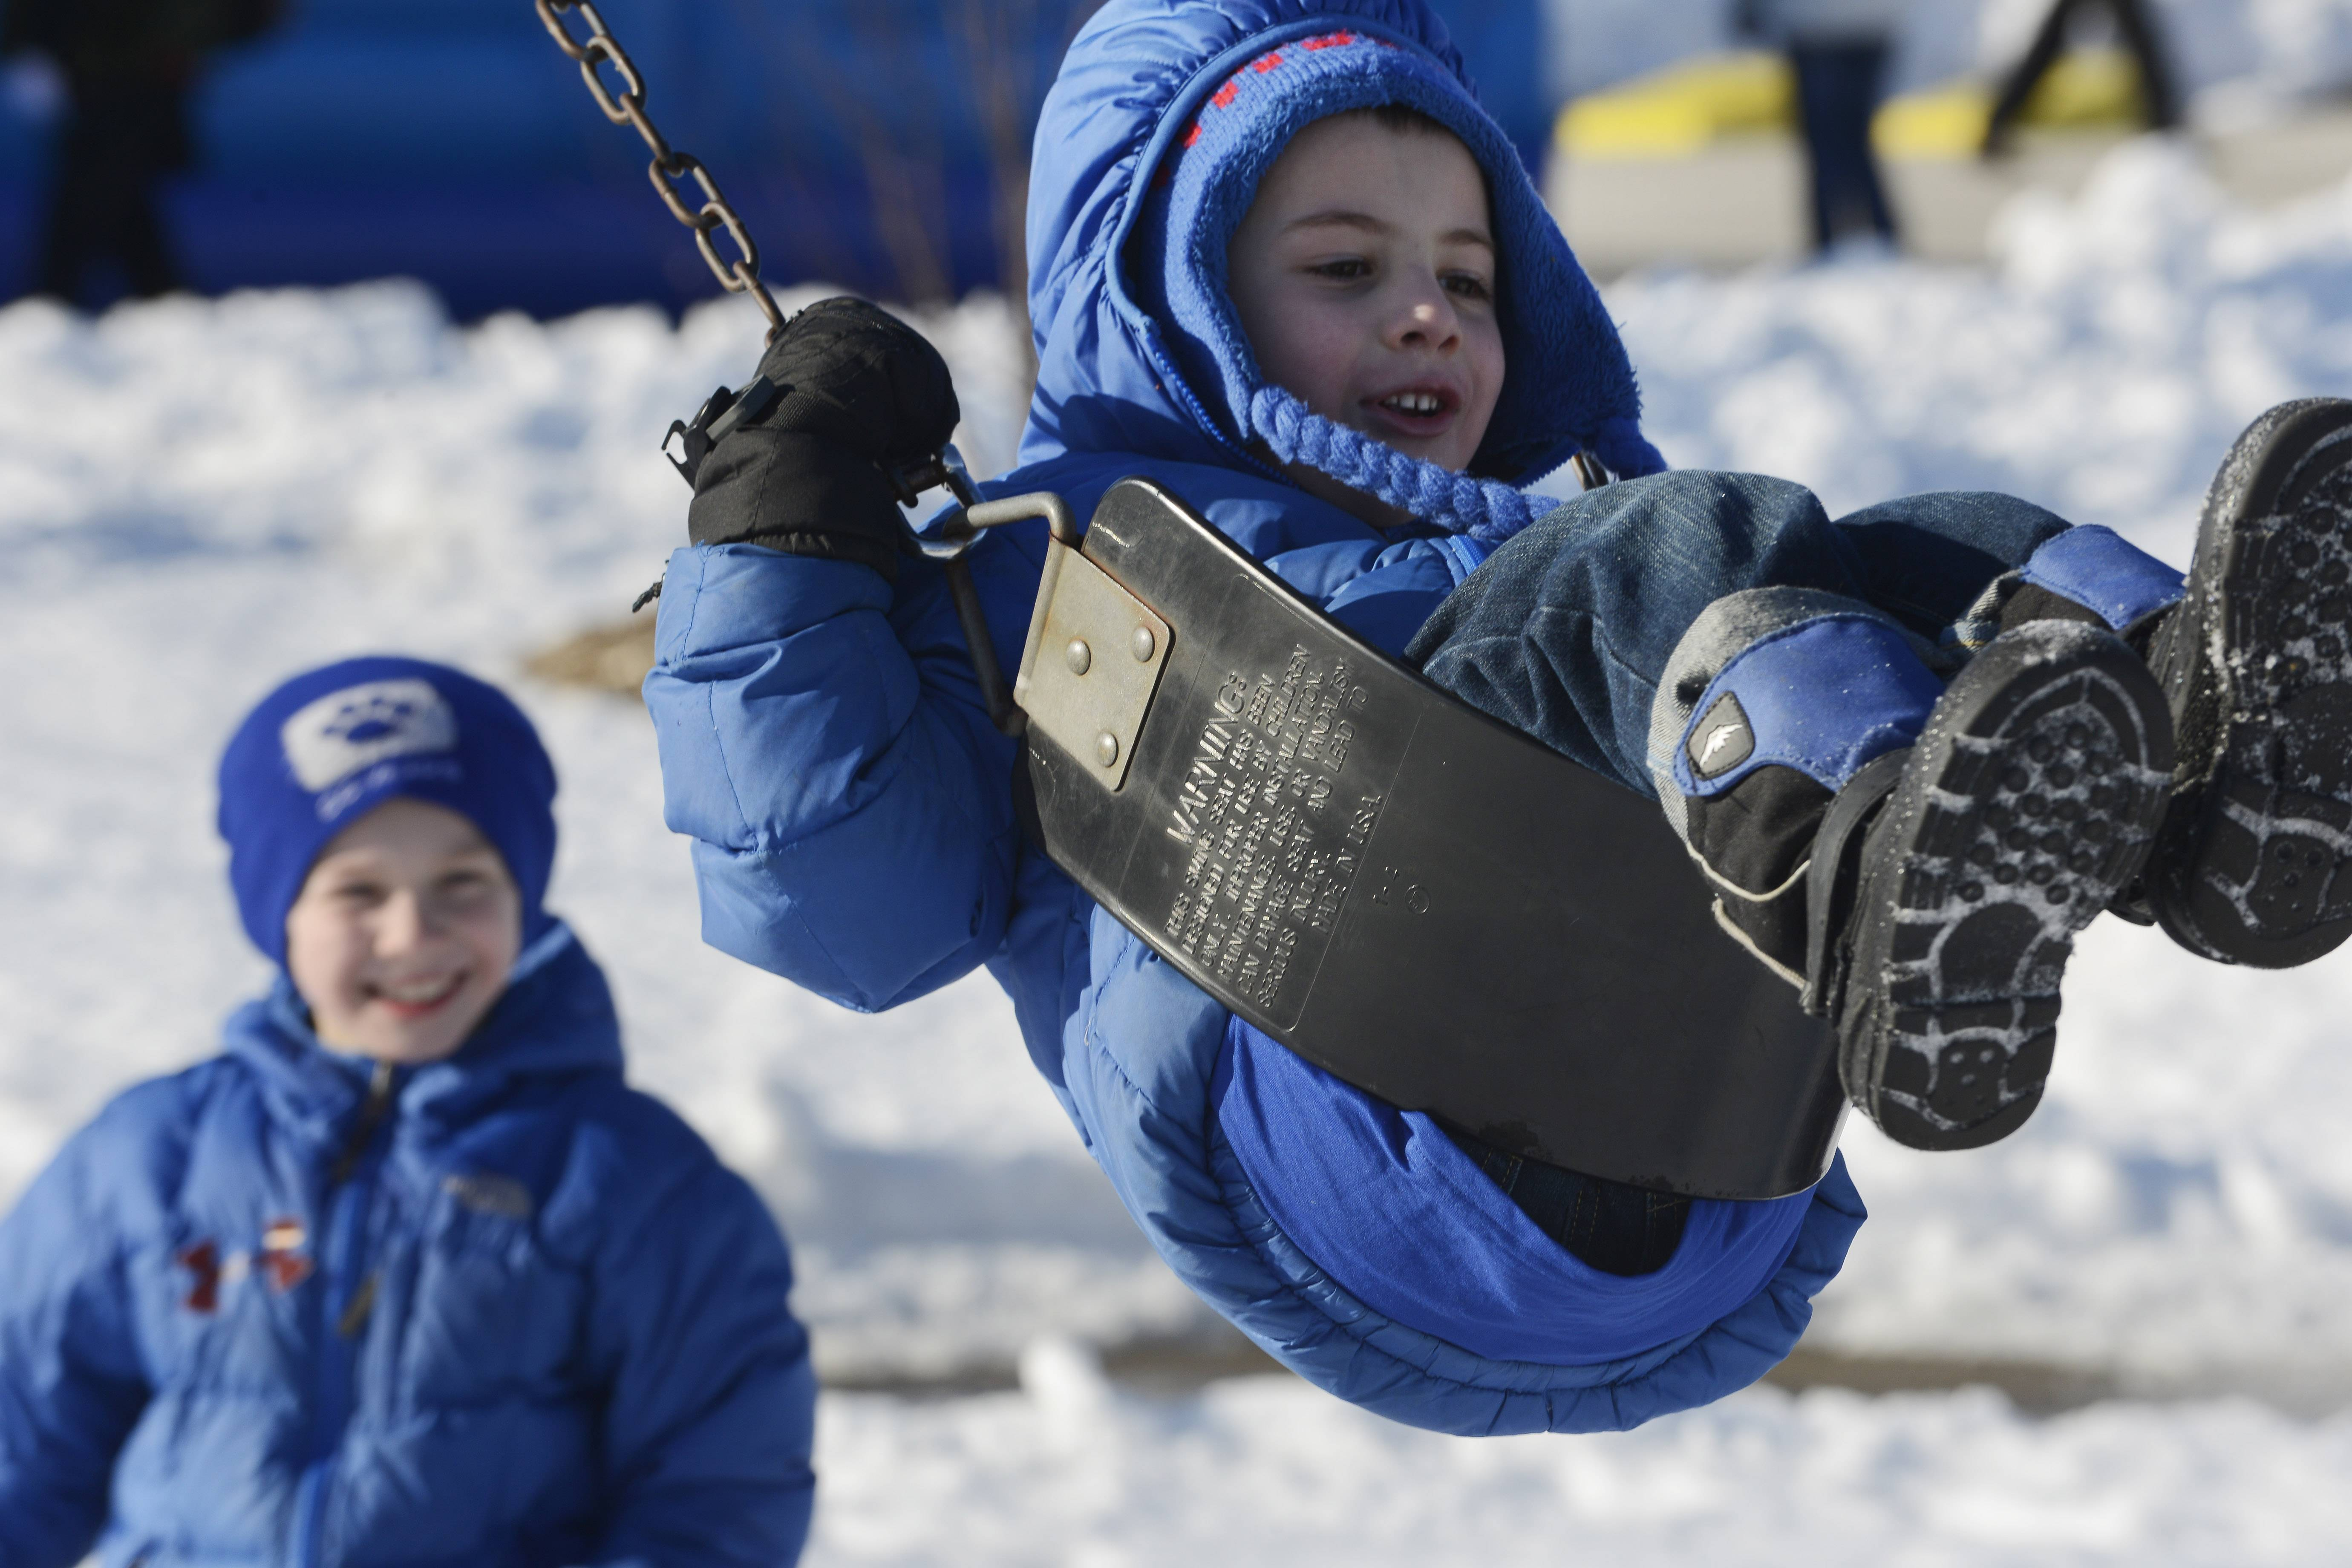 Lucas Harrington, 5, of Lake Zurich, doesn't let the freezing temperature deter him from enjoying the swing while being pushed by his brother, Danny, 7, during the Winter Wonderland Carnival at Community Park in Hawthorn Woods Saturday.